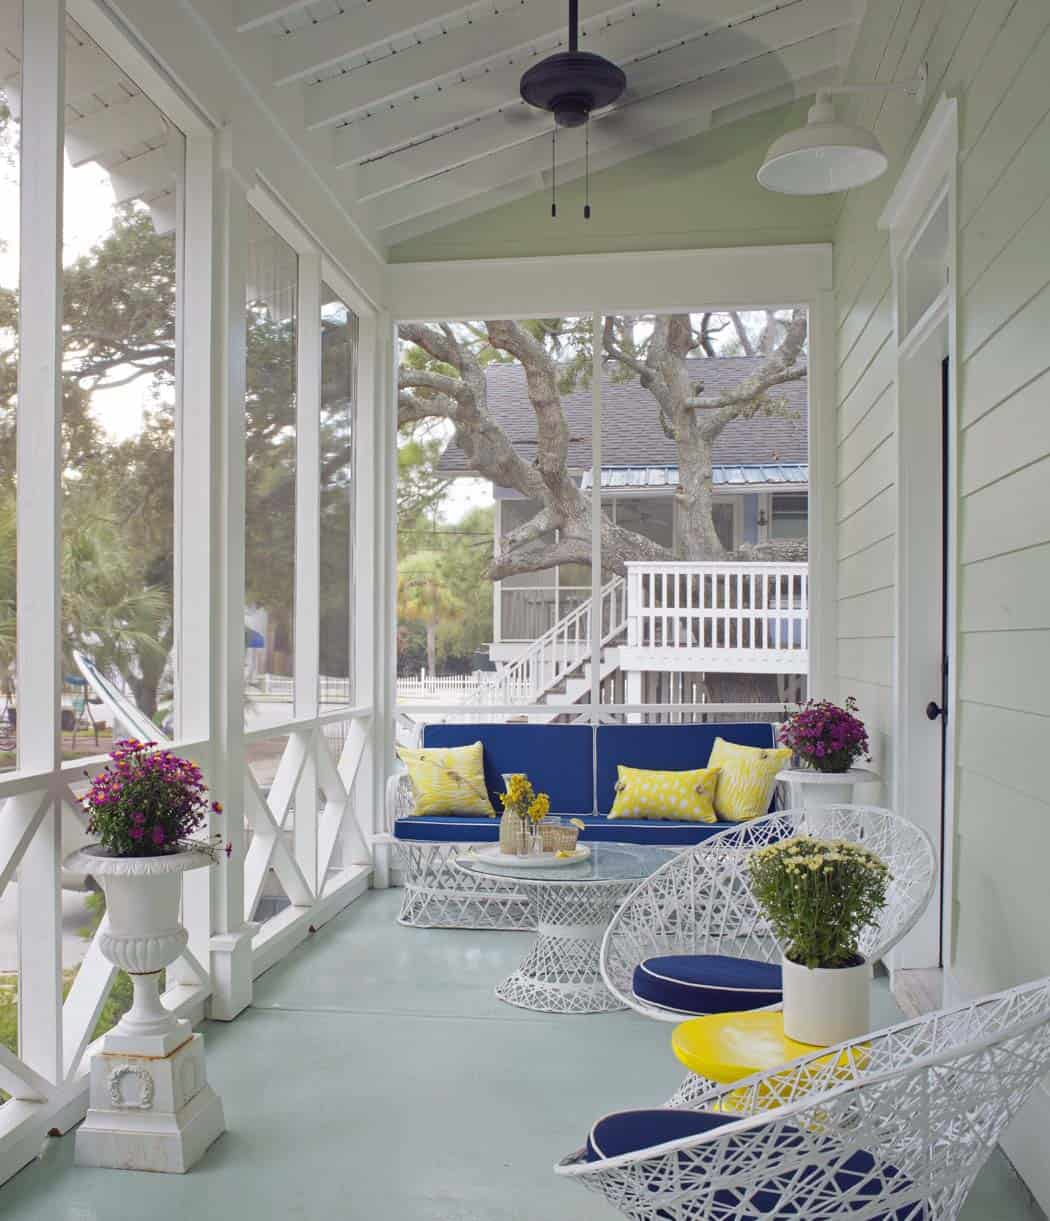 Tybee Beach House-Rethink Design Studio-01-1 Kind Design